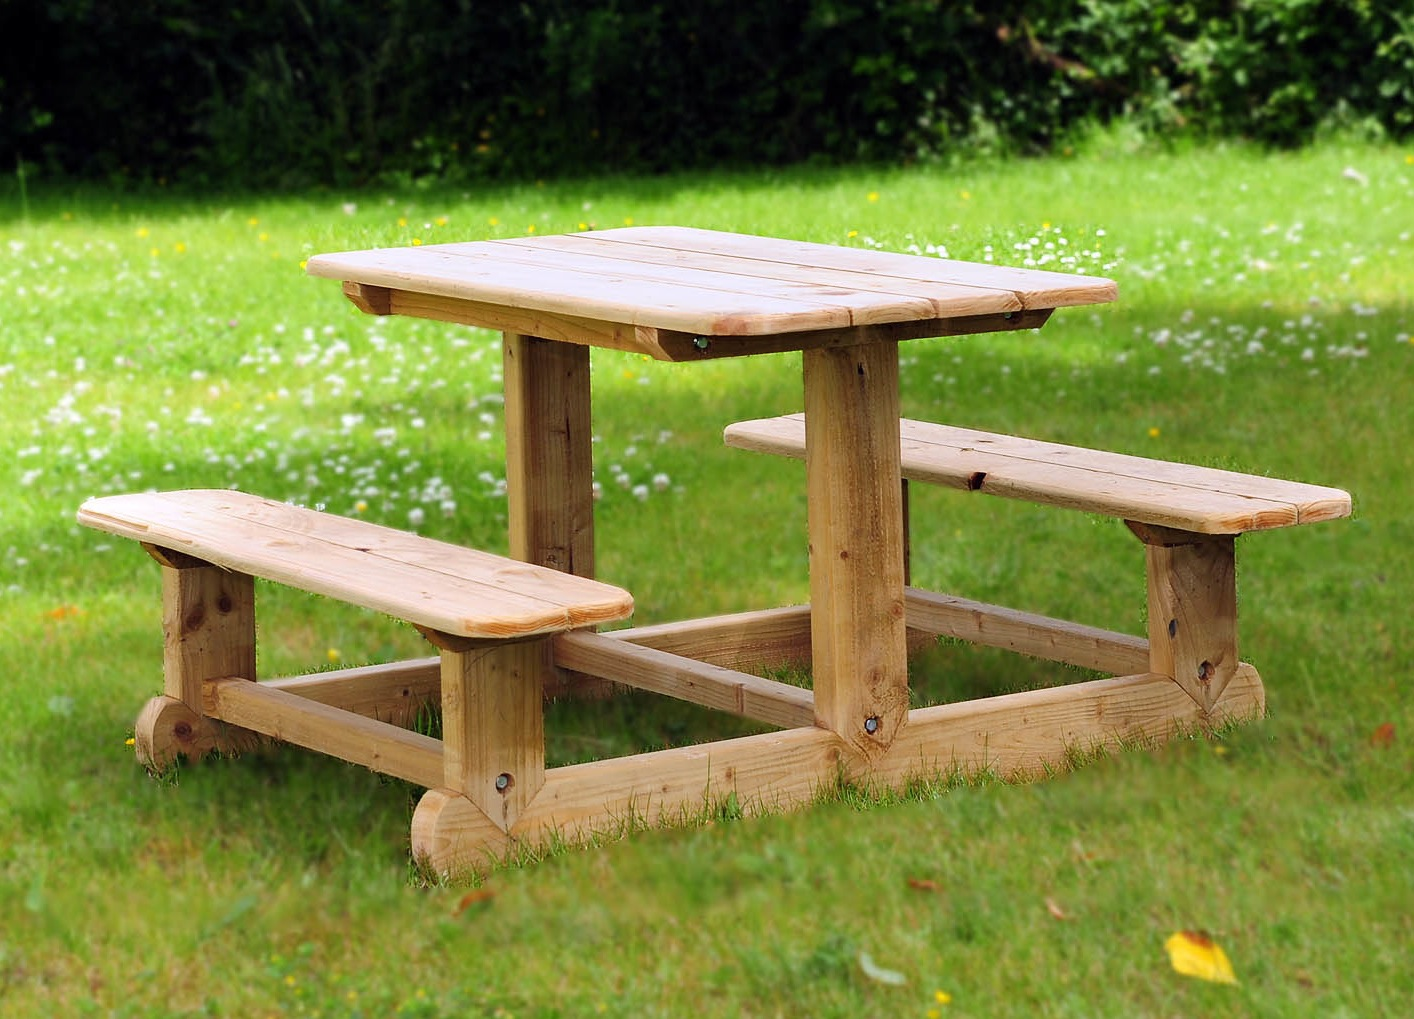 tony wooden furniture heavyroundtable products heavy details round garden ward table